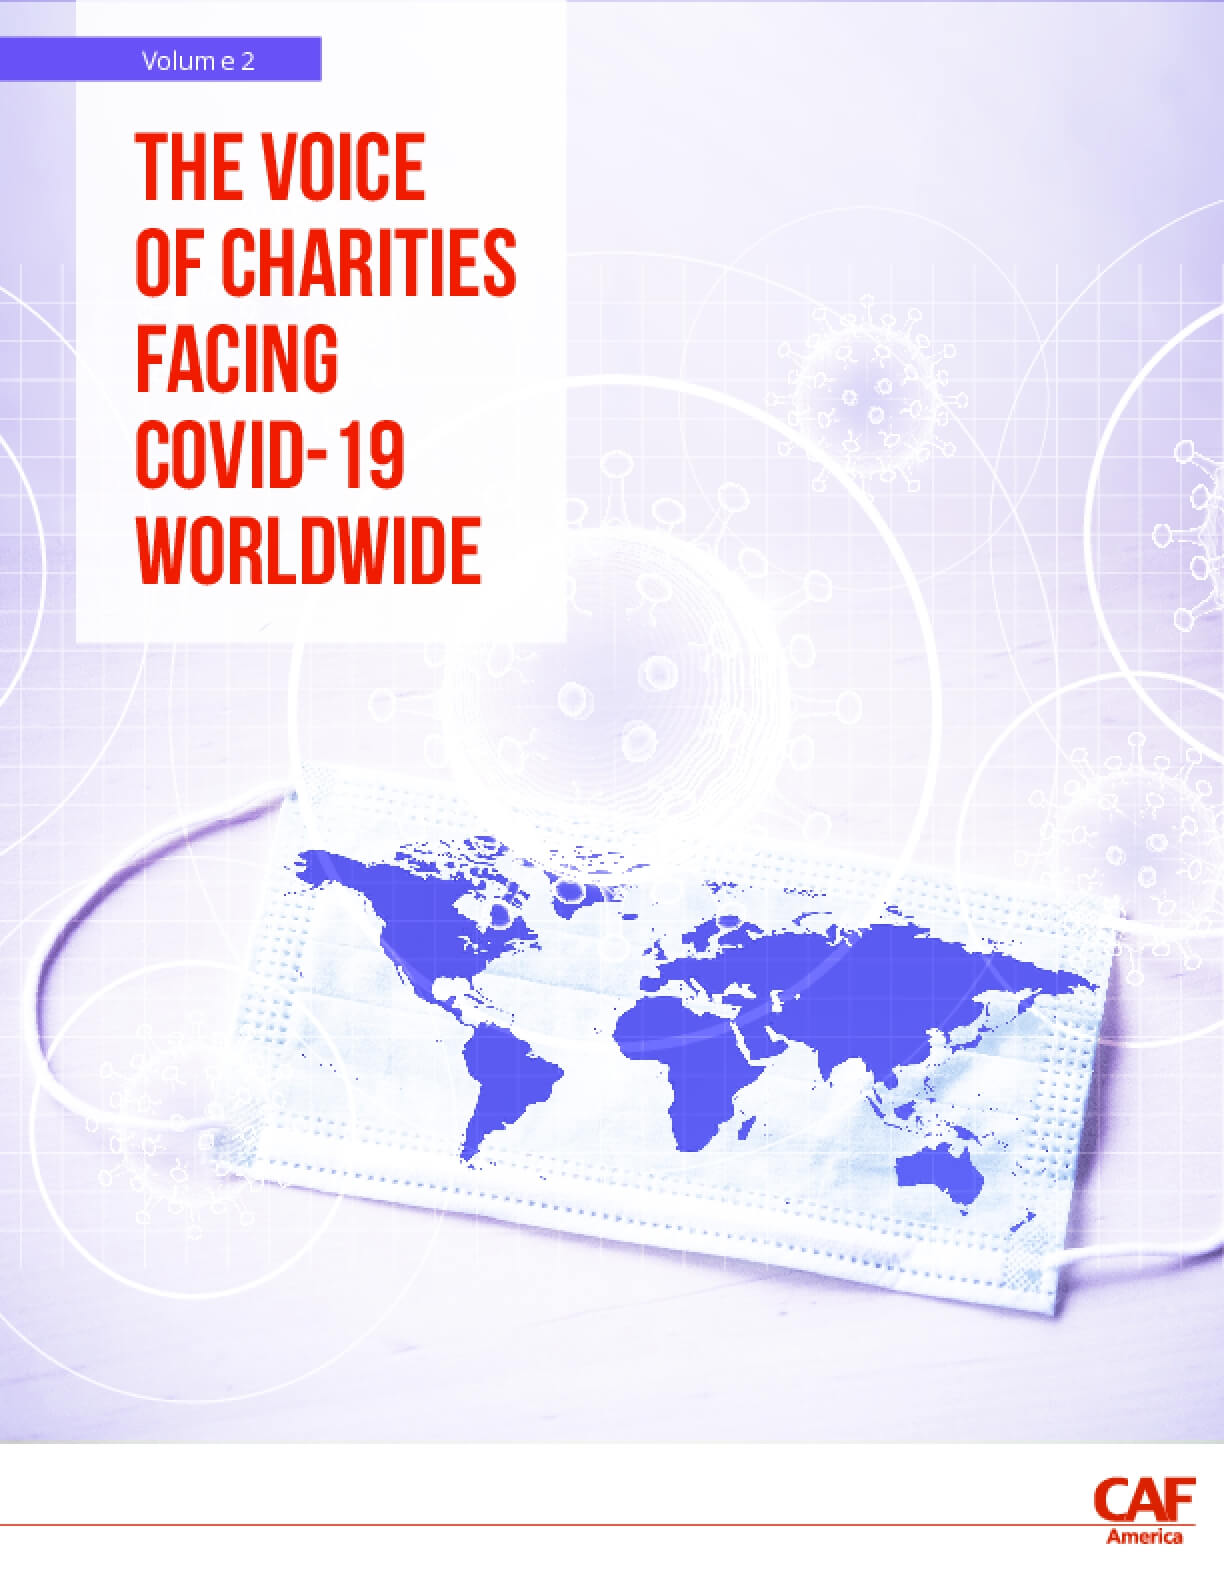 The Voice of Charities Facing COVID-19 Worldwide, Volume 2